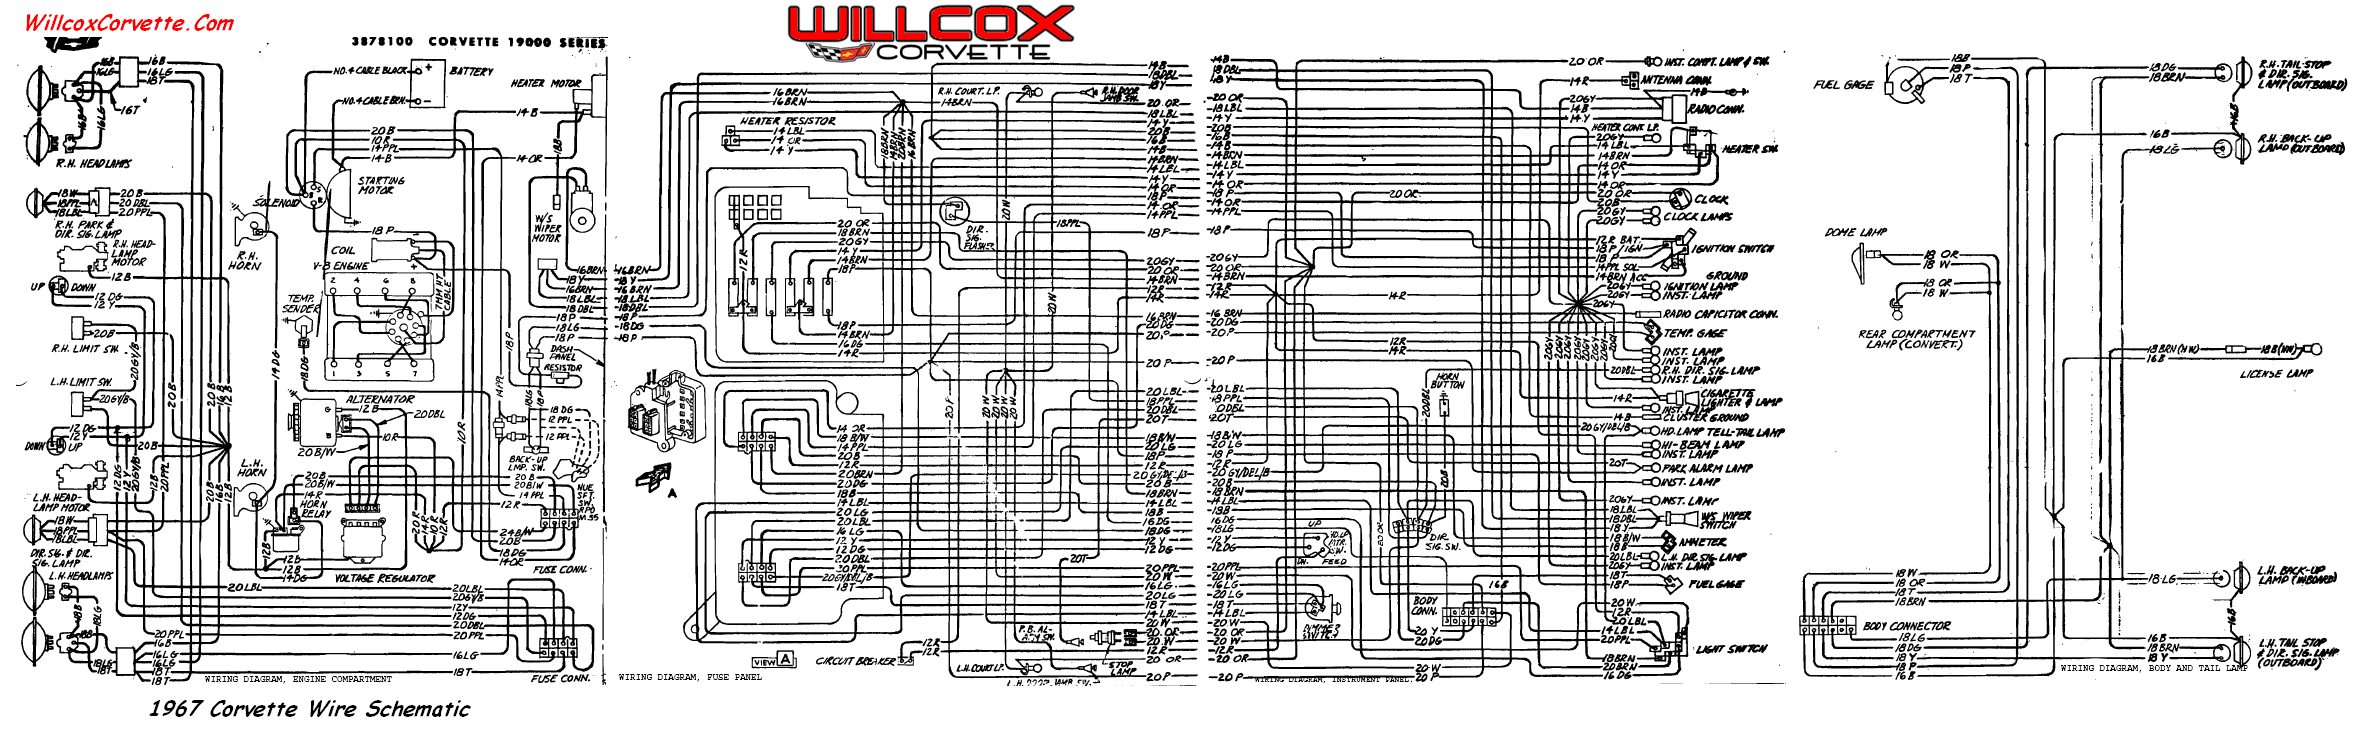 1976 corvette wiring diagram wiring diagram rh blaknwyt co 1977 corvette gauge wiring diagram 77 corvette radio wiring diagram